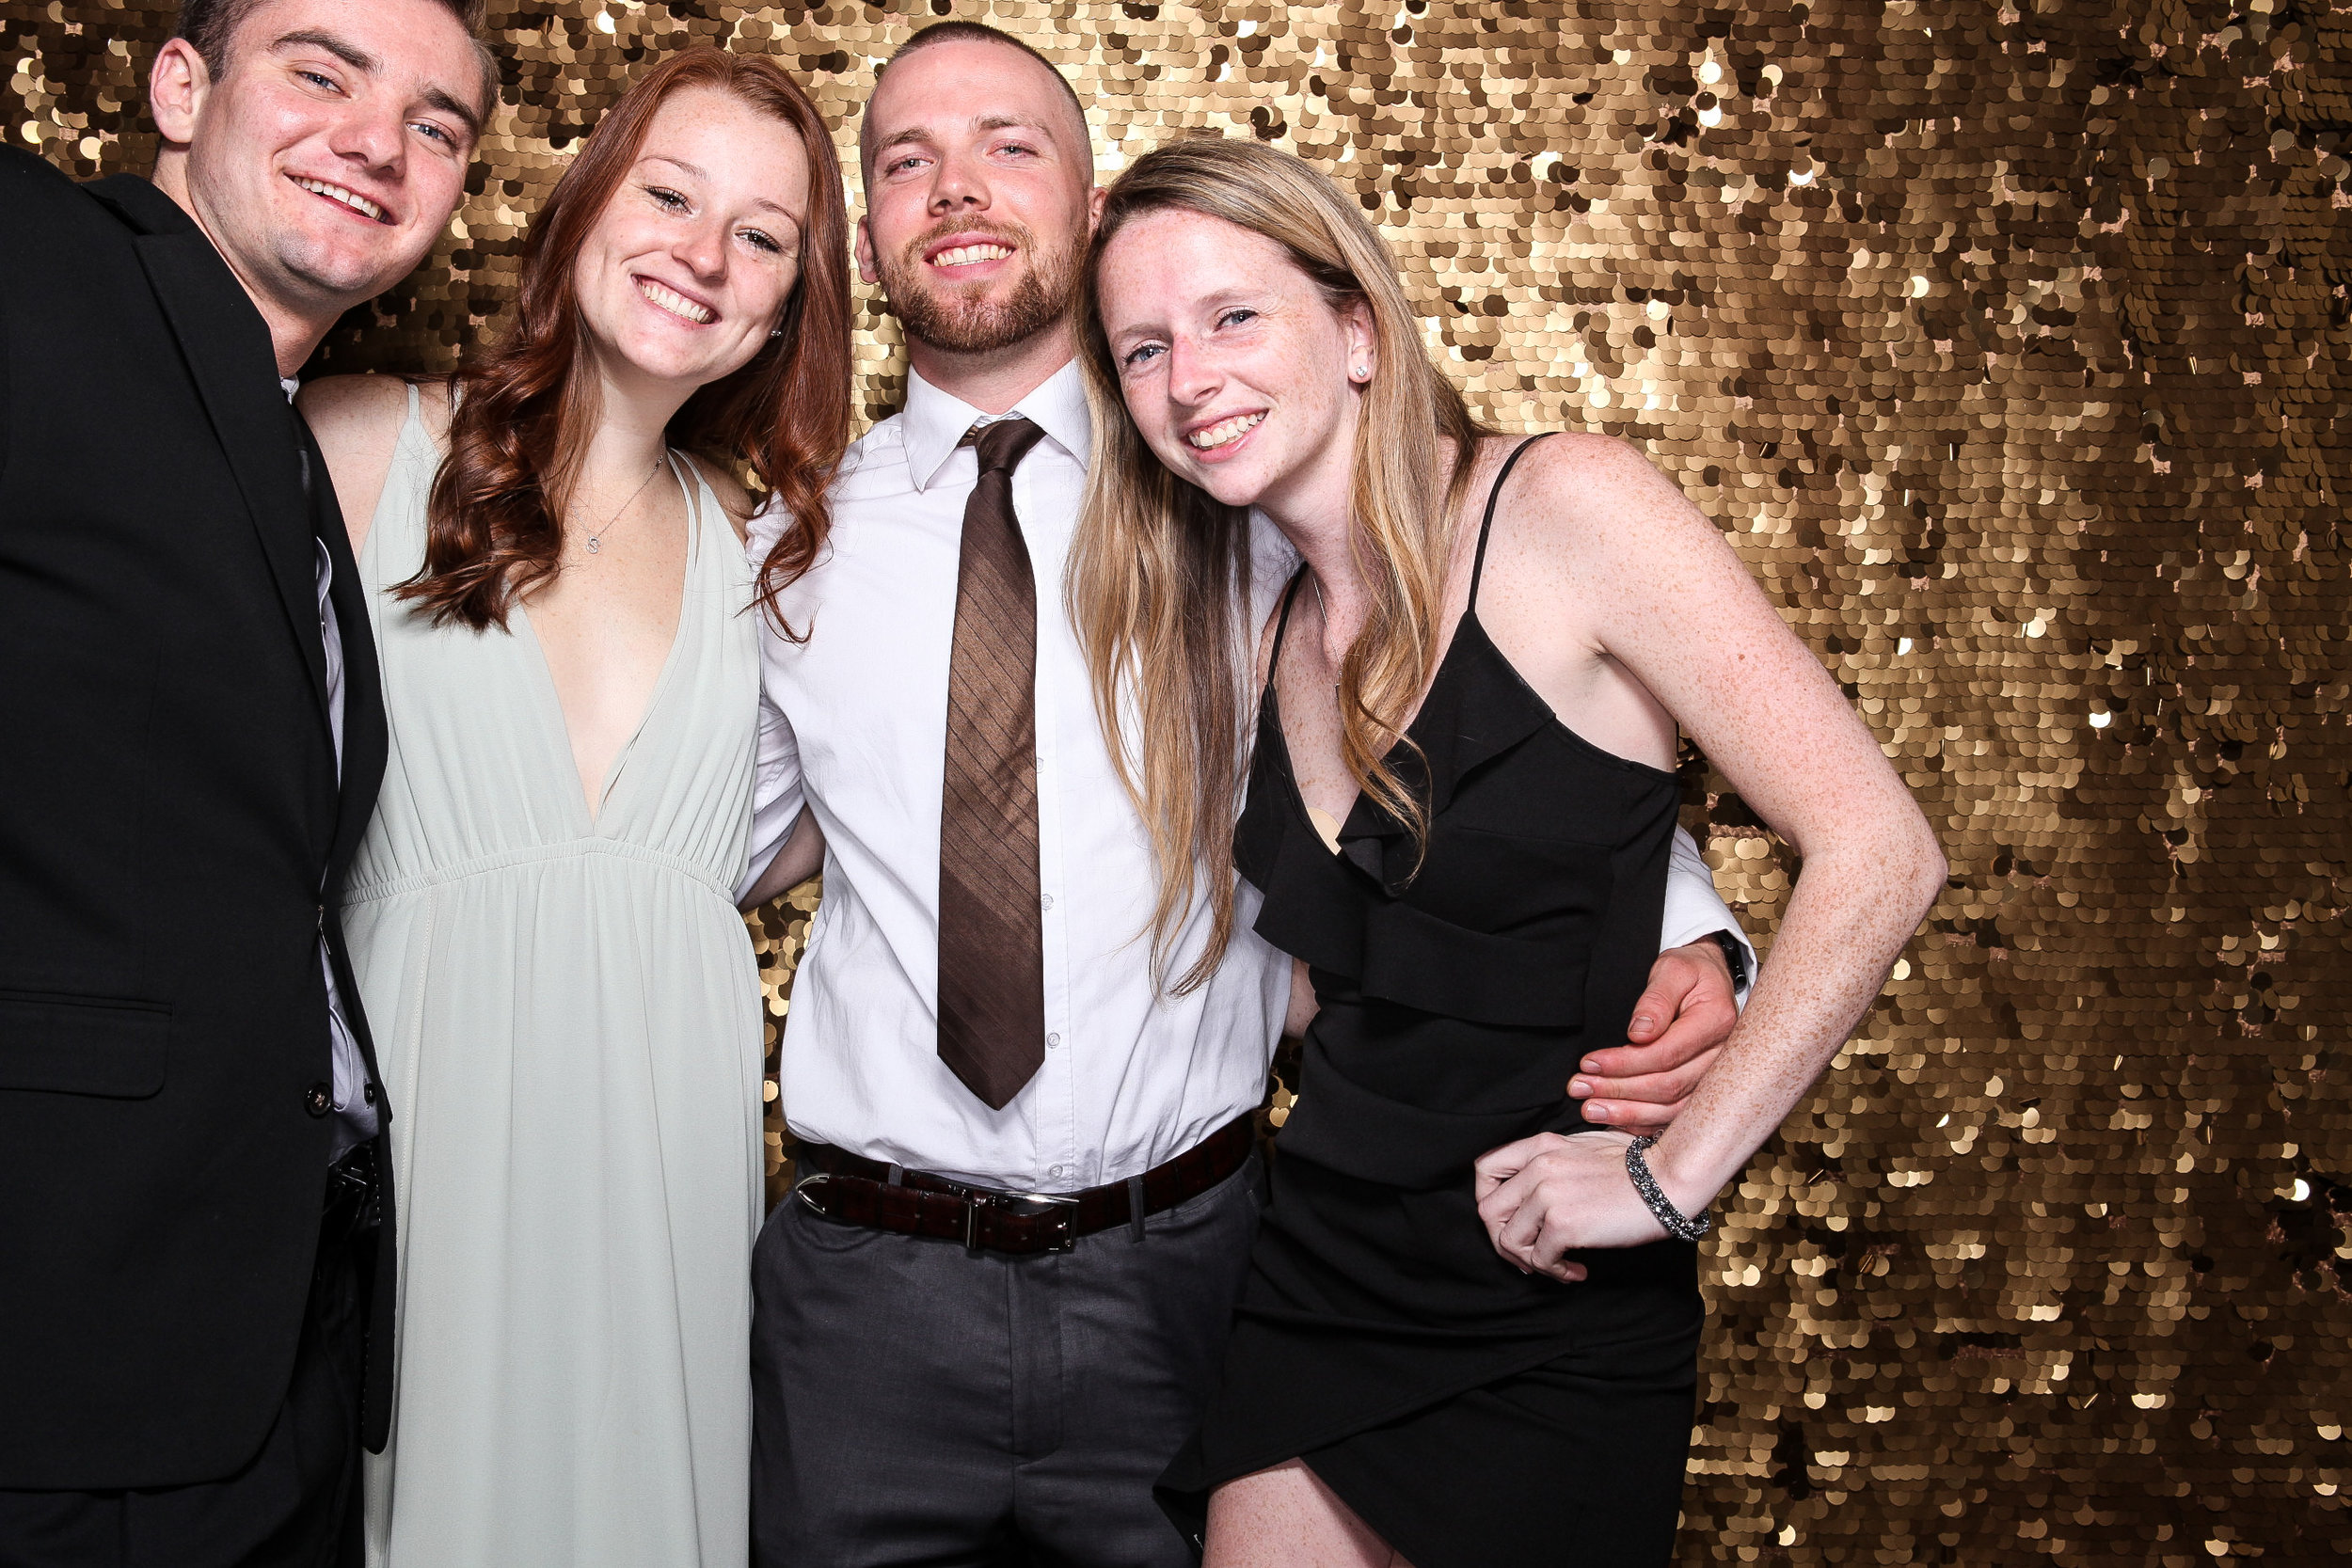 20190503_Adelphi_Senior_Formal-233.jpg